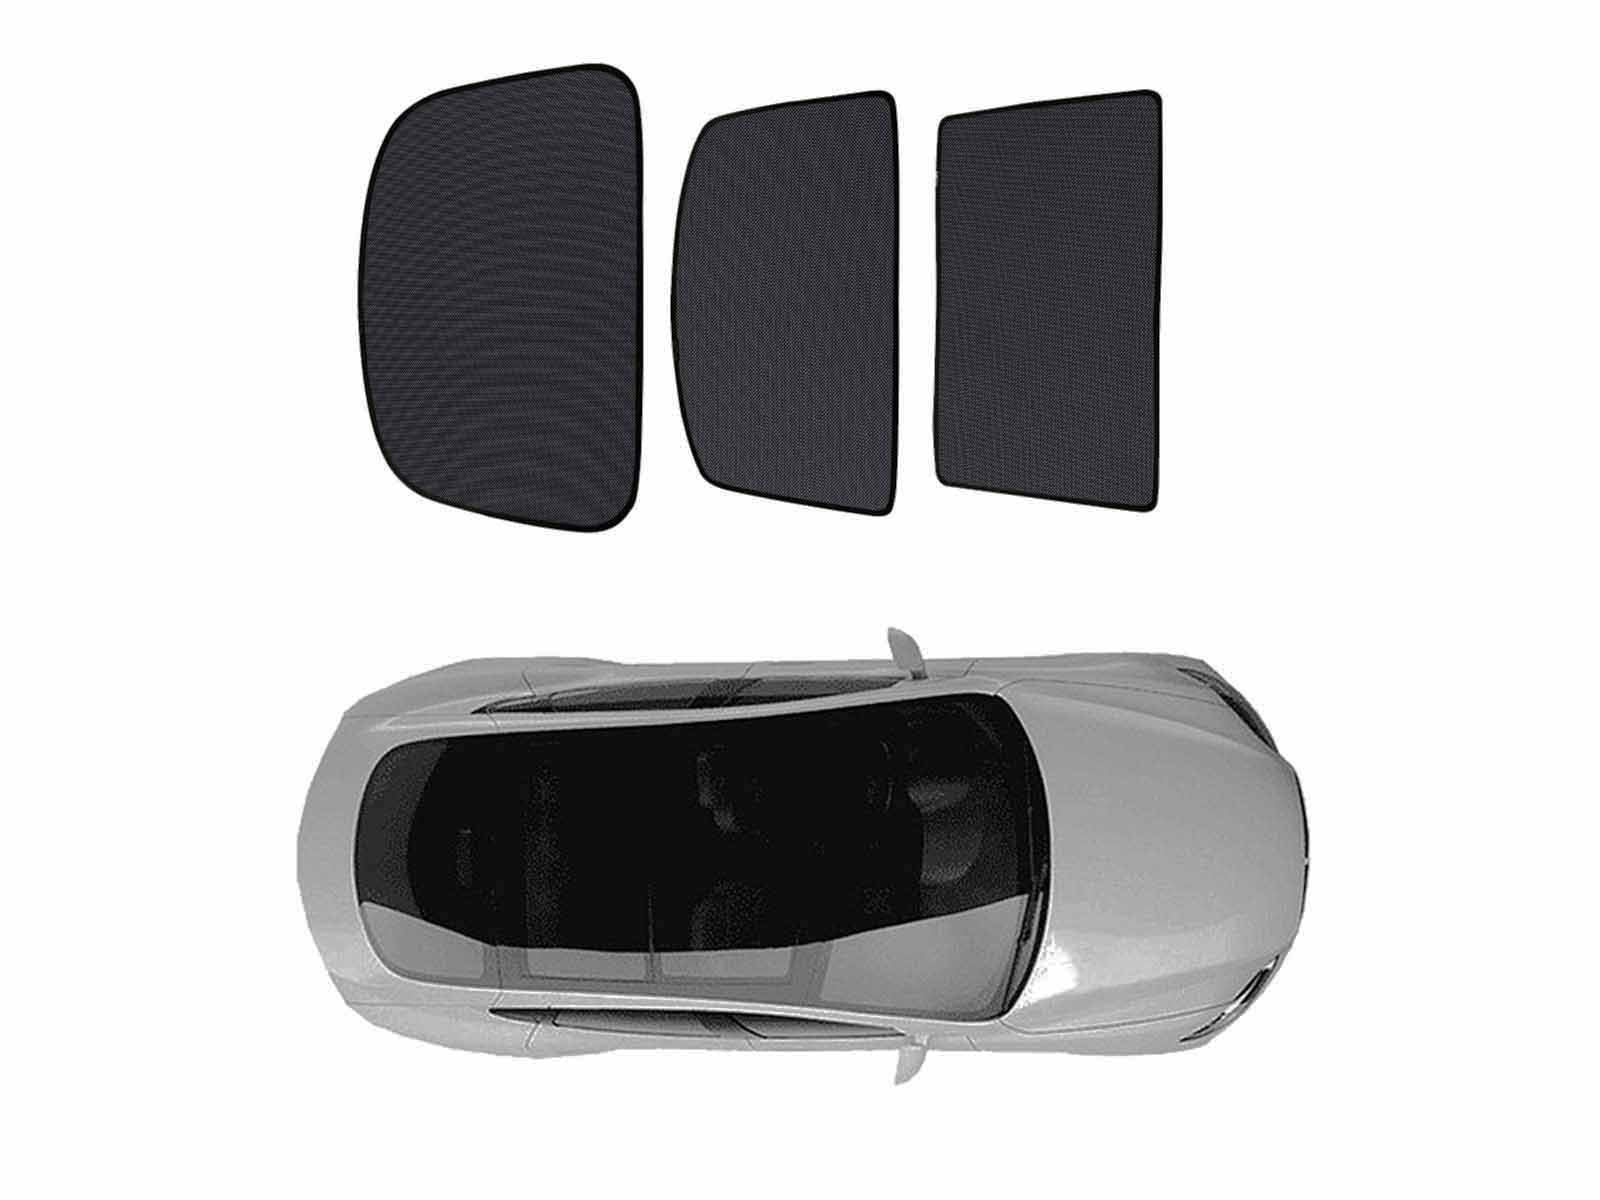 Model S: Sunshade for Solar Roof (3 pcs) - Torque Alliance